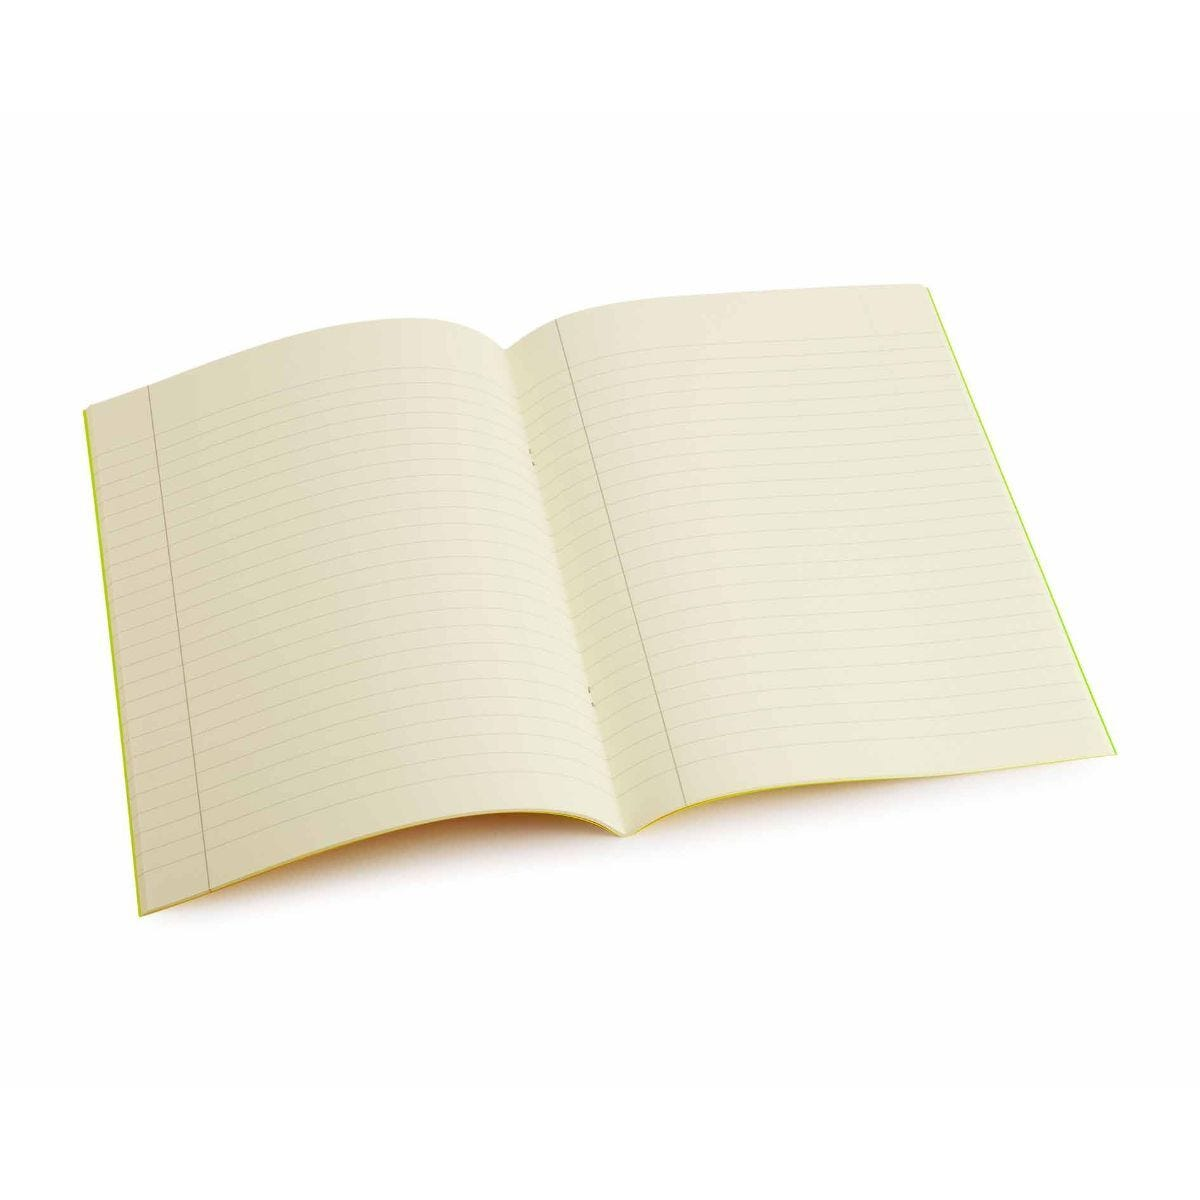 Tinted Exercise Books Lined A4 10mm Cream